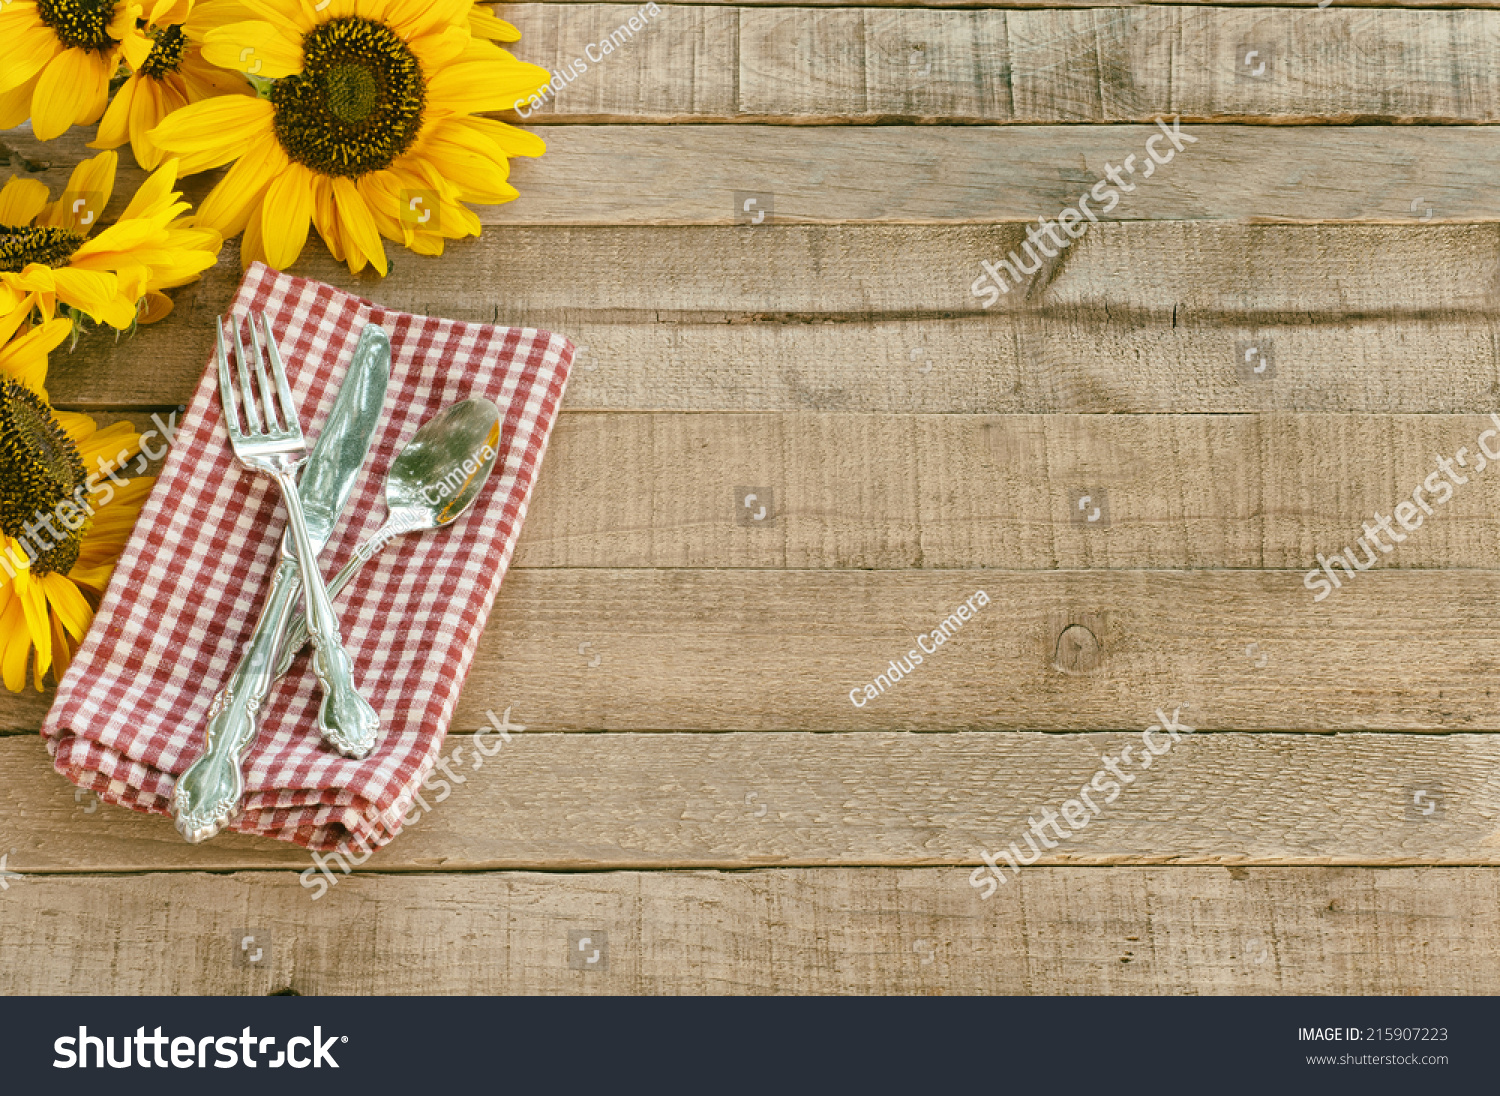 Picnic Table Setting with Pretty Cheerful Sunflowers Silverware red white checked napkin brown  sc 1 st  Avopix.com & Royalty-free Picnic Table Setting with Prettyu2026 #215907223 Stock ...